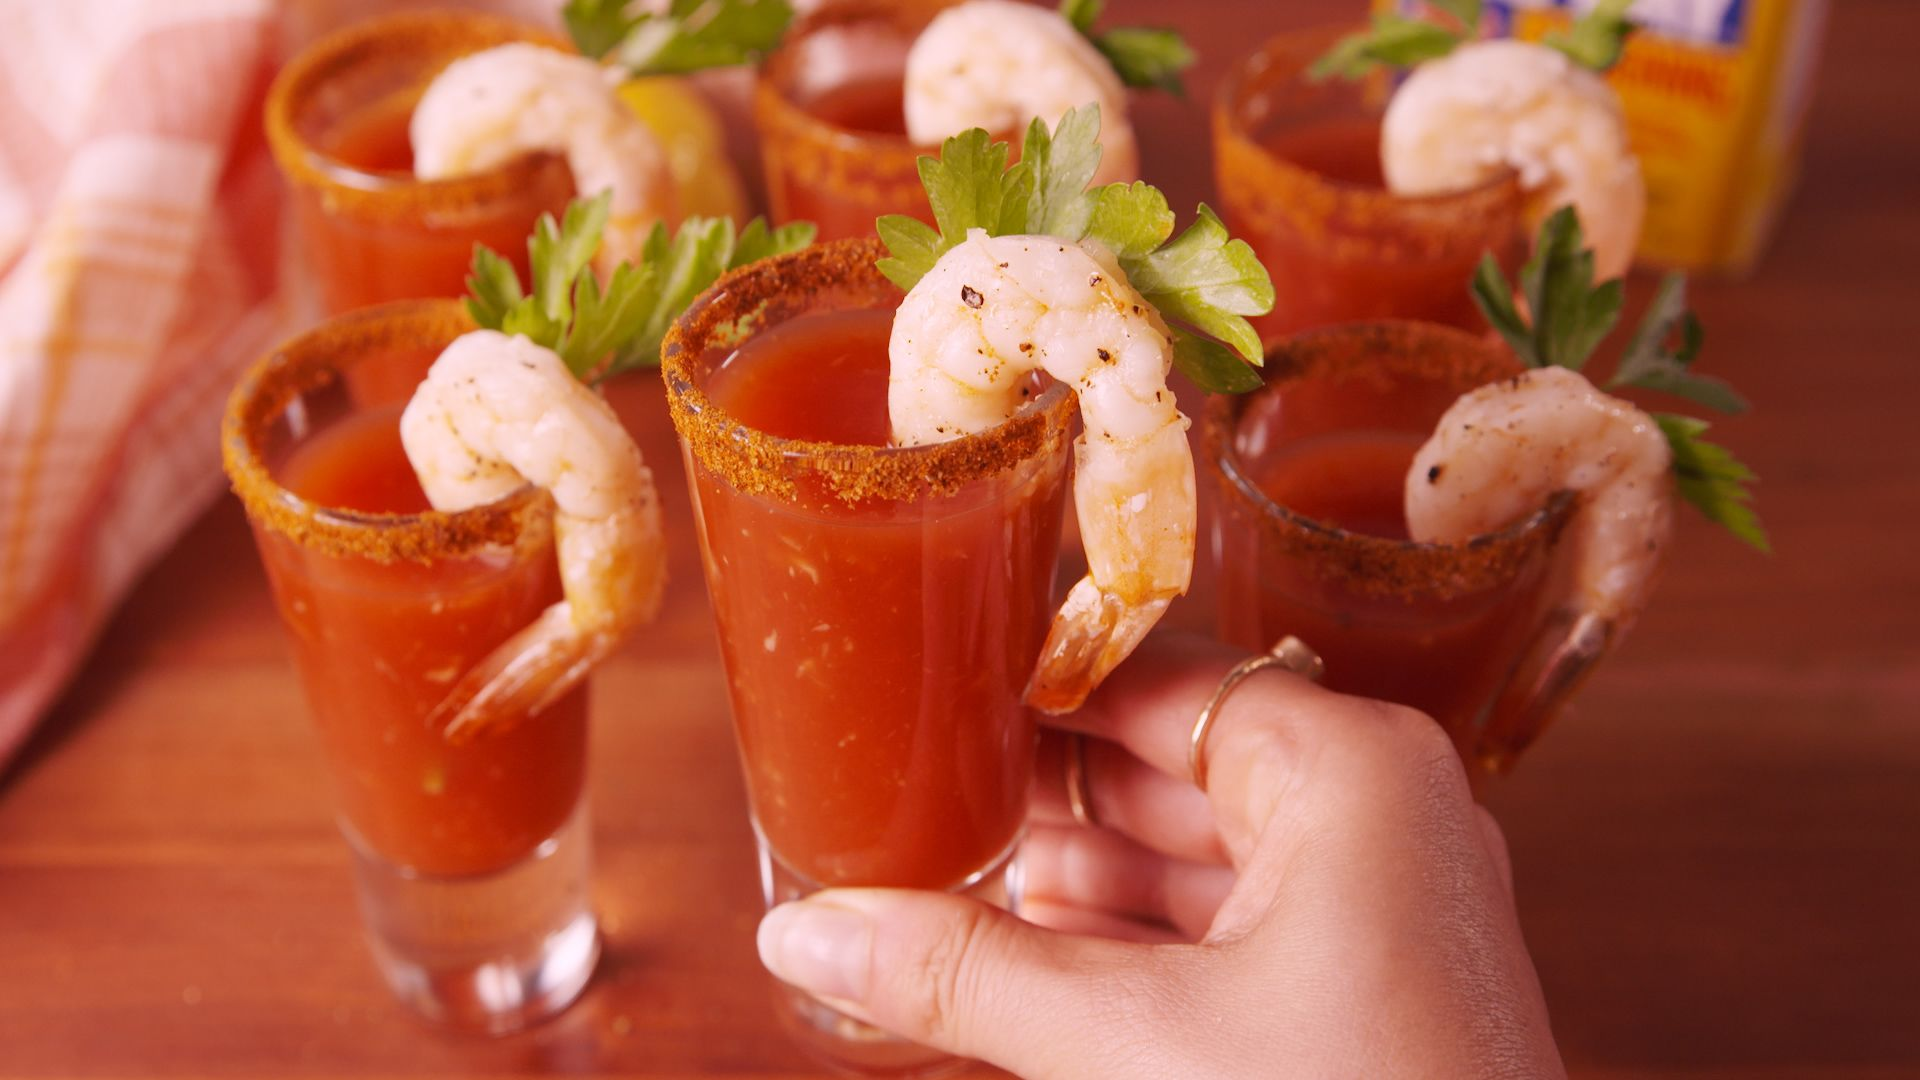 Best Drunken Shrimp Cocktail How To Make Drunken Shrimp Cocktail